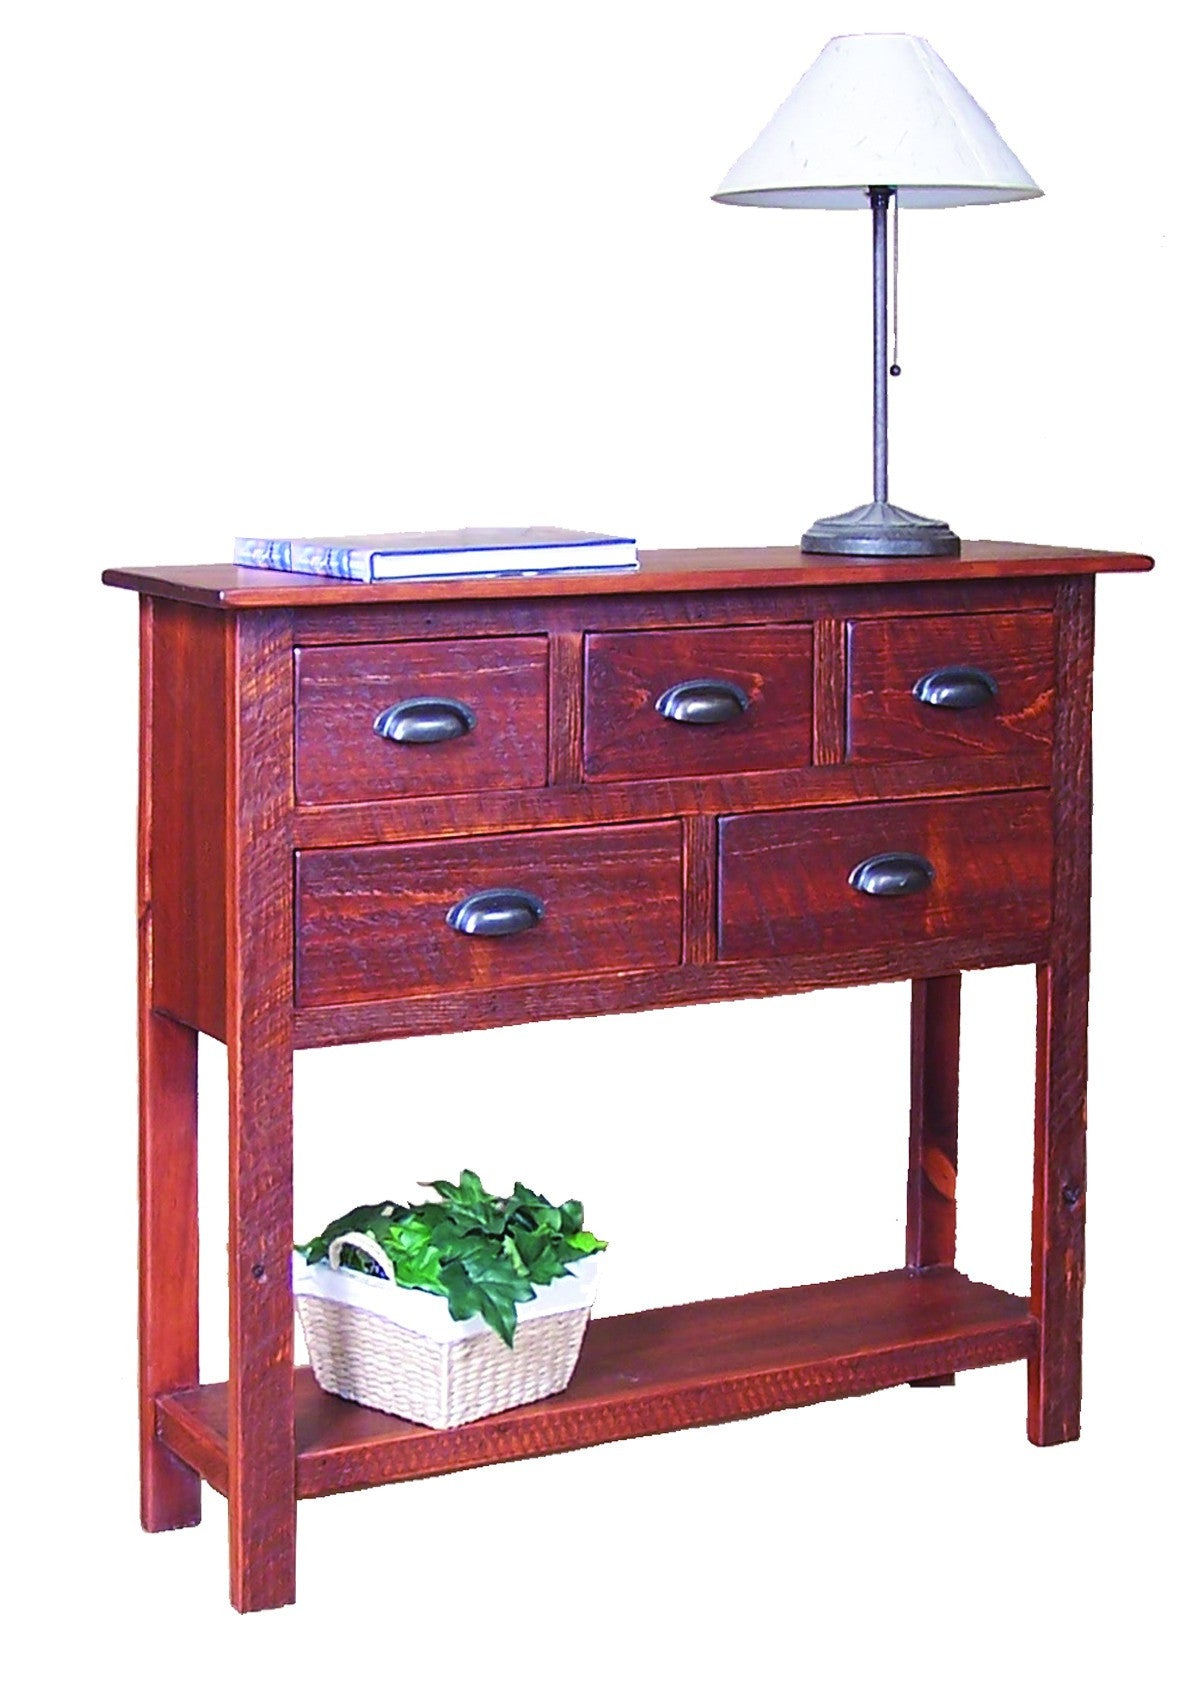 Cumberland Sideboard 2 Day Designs 4096*